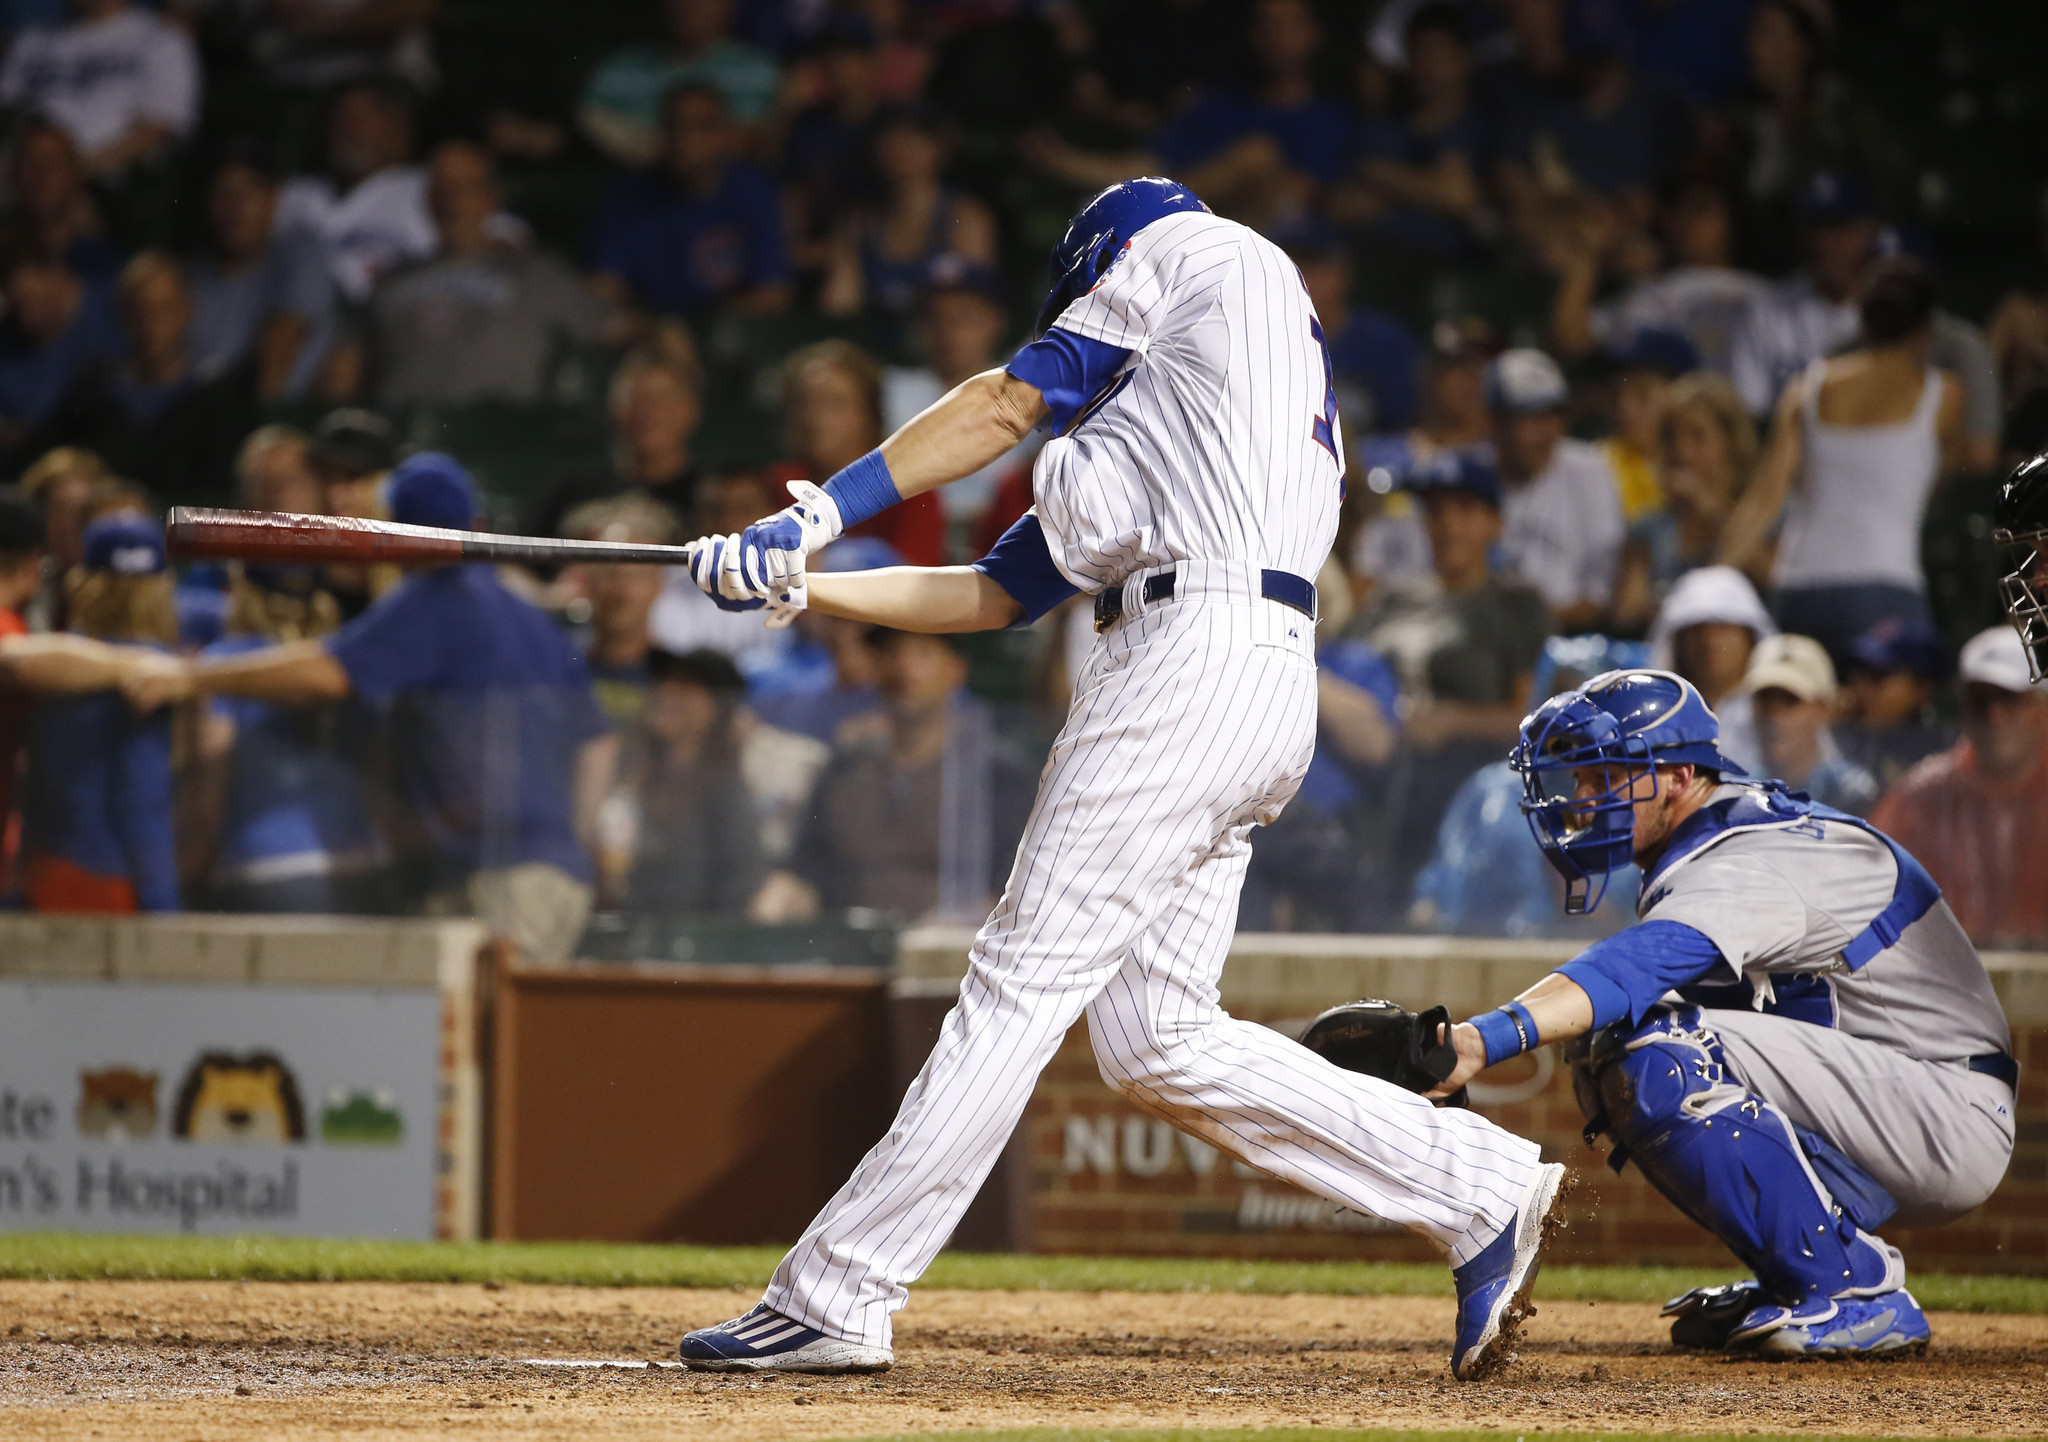 No debate over quality of Kris Bryant's 2 HRs - Chicago Tribune